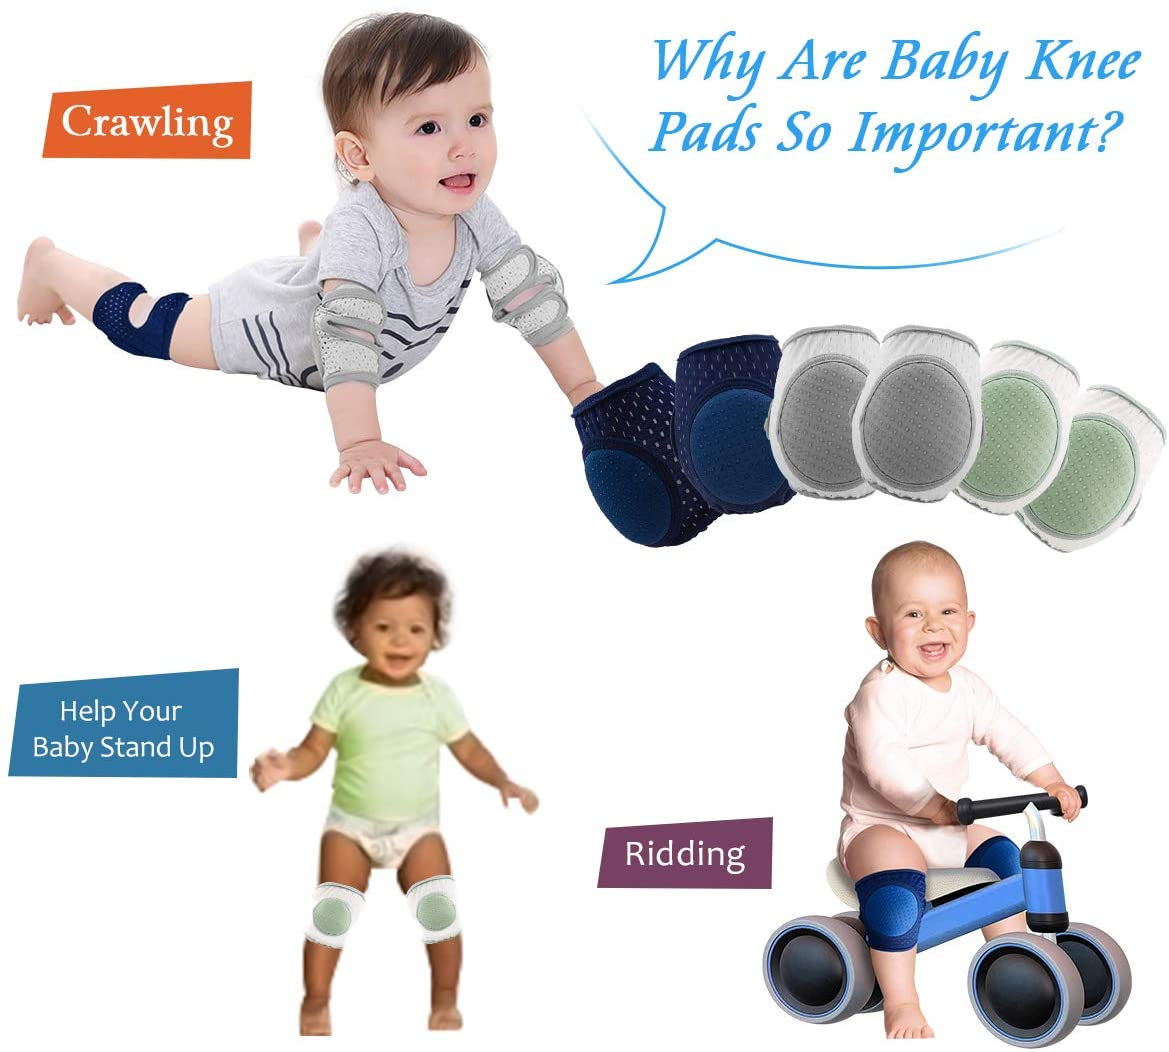 Baby Knee Pads For Crawling.